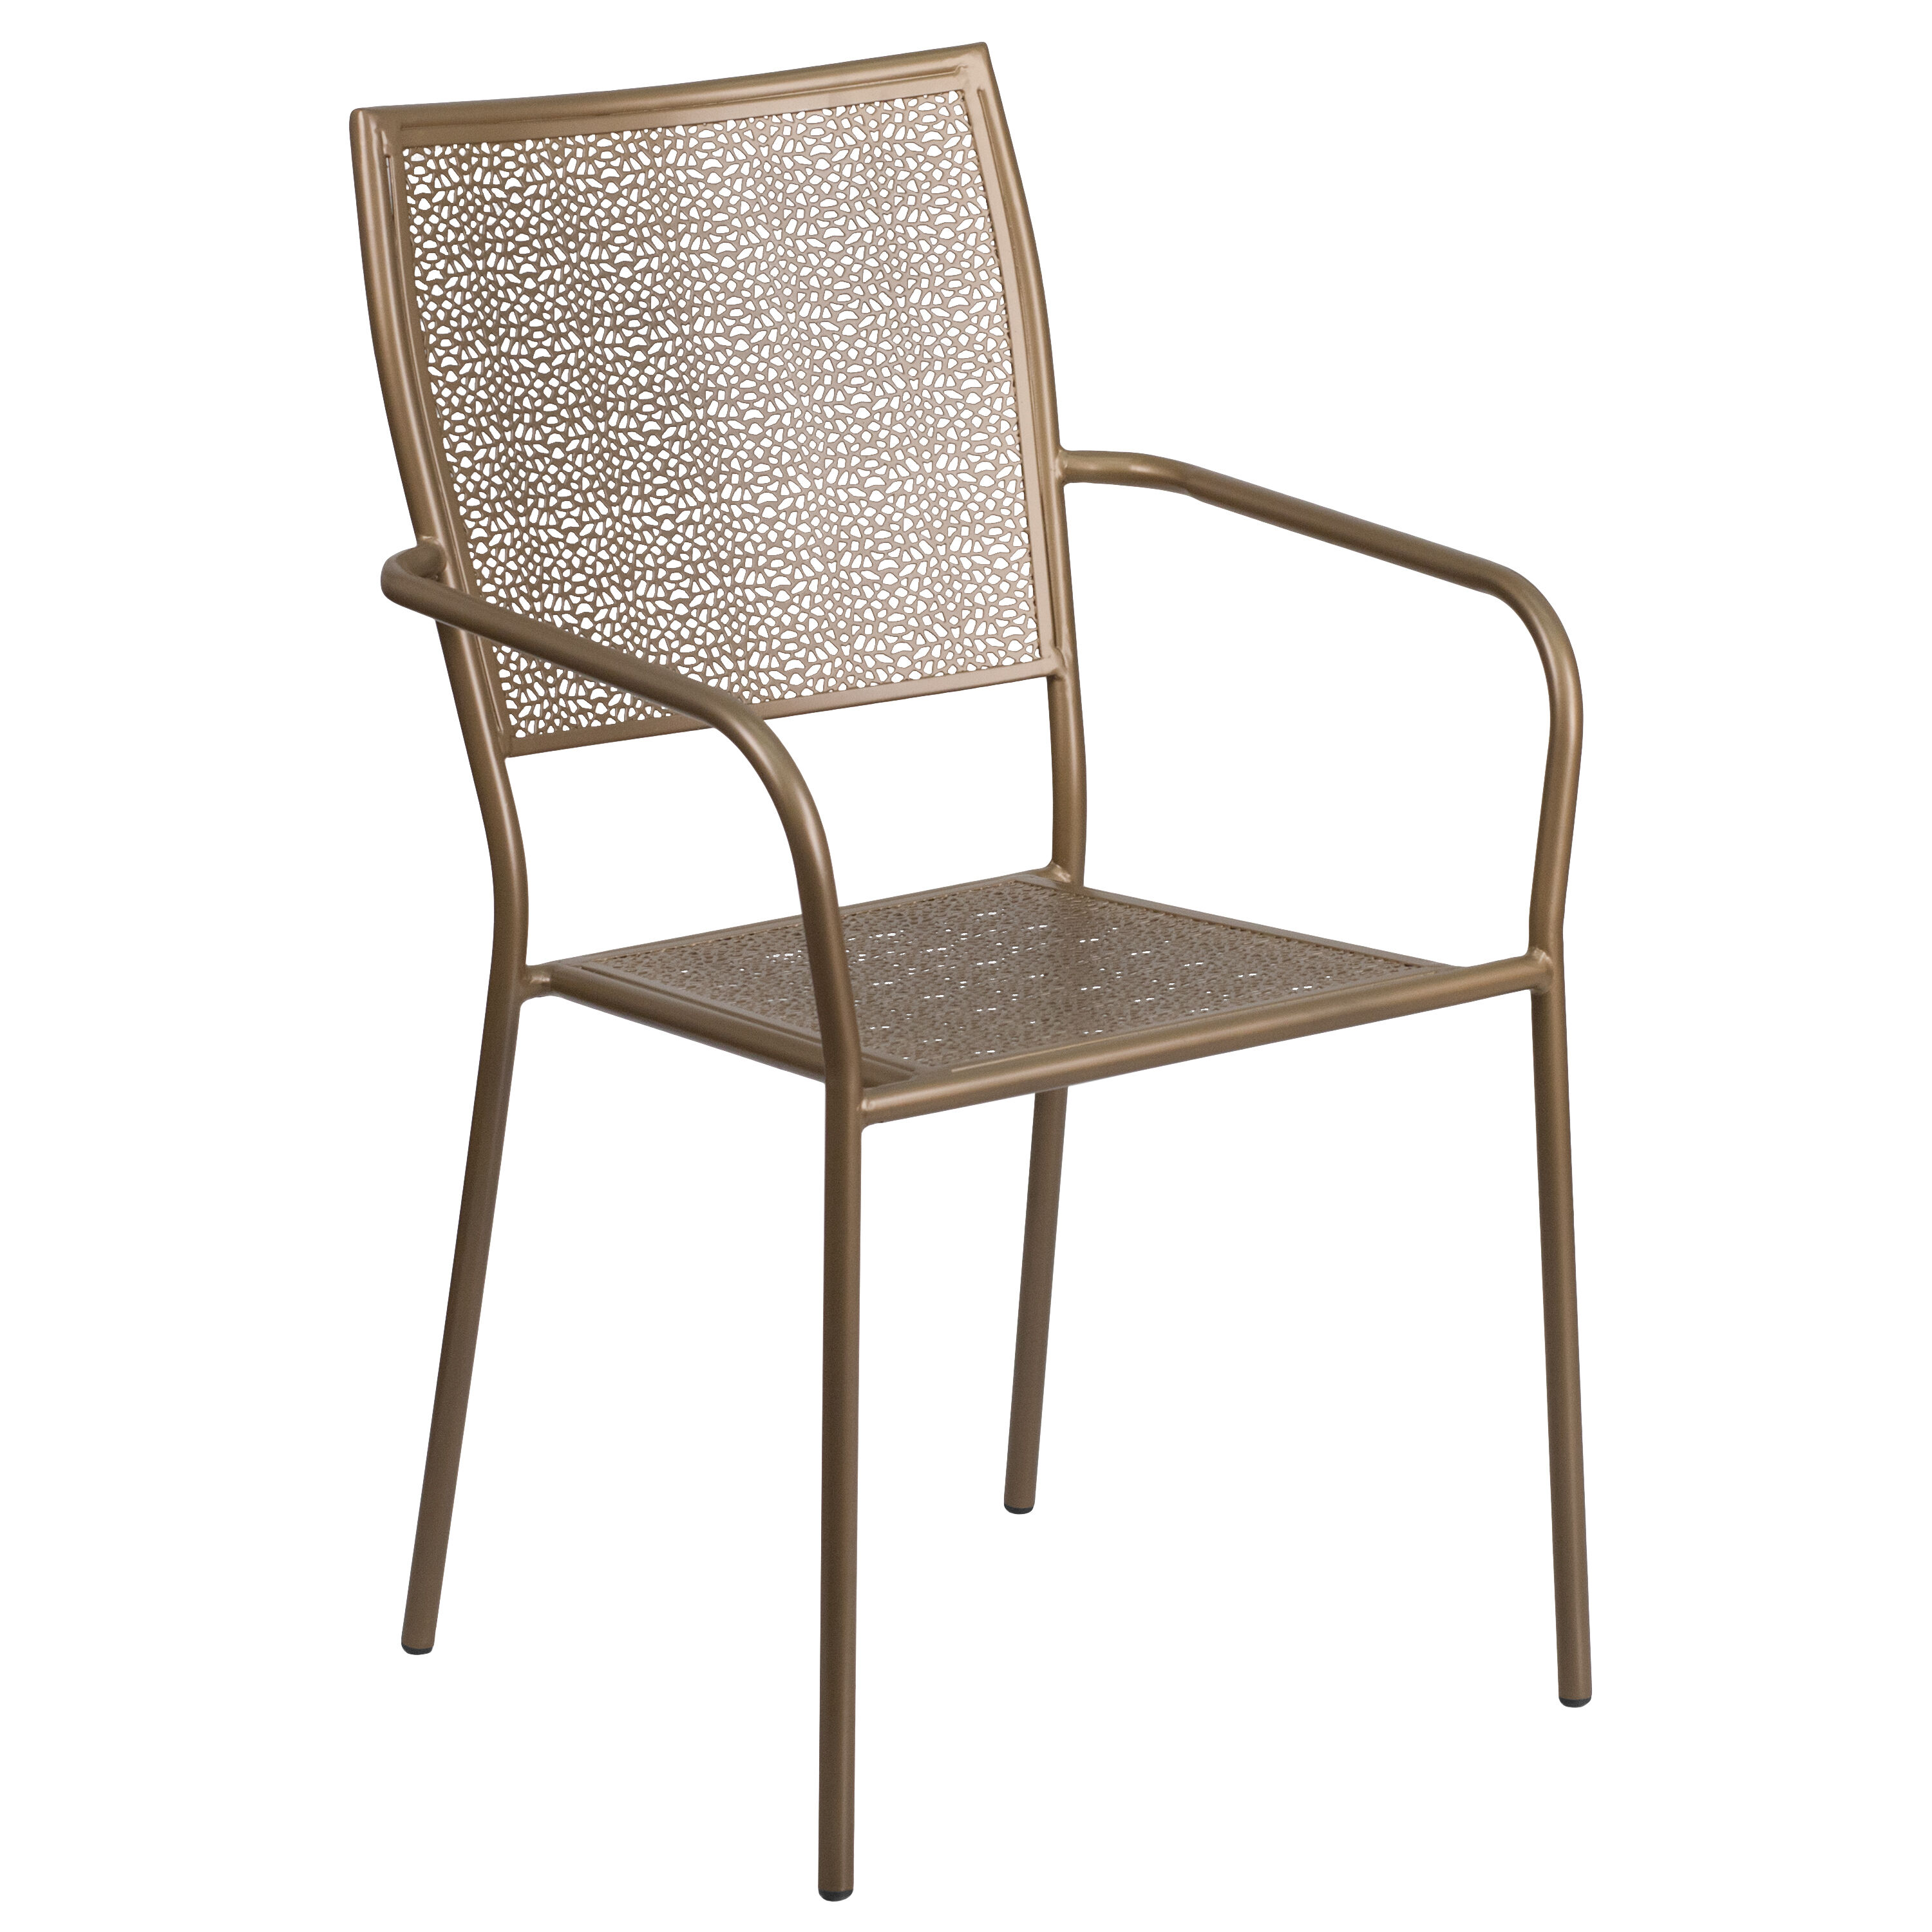 steel chair gold hanging evermotion square back patio co 2 gd gg stackchairs4less com